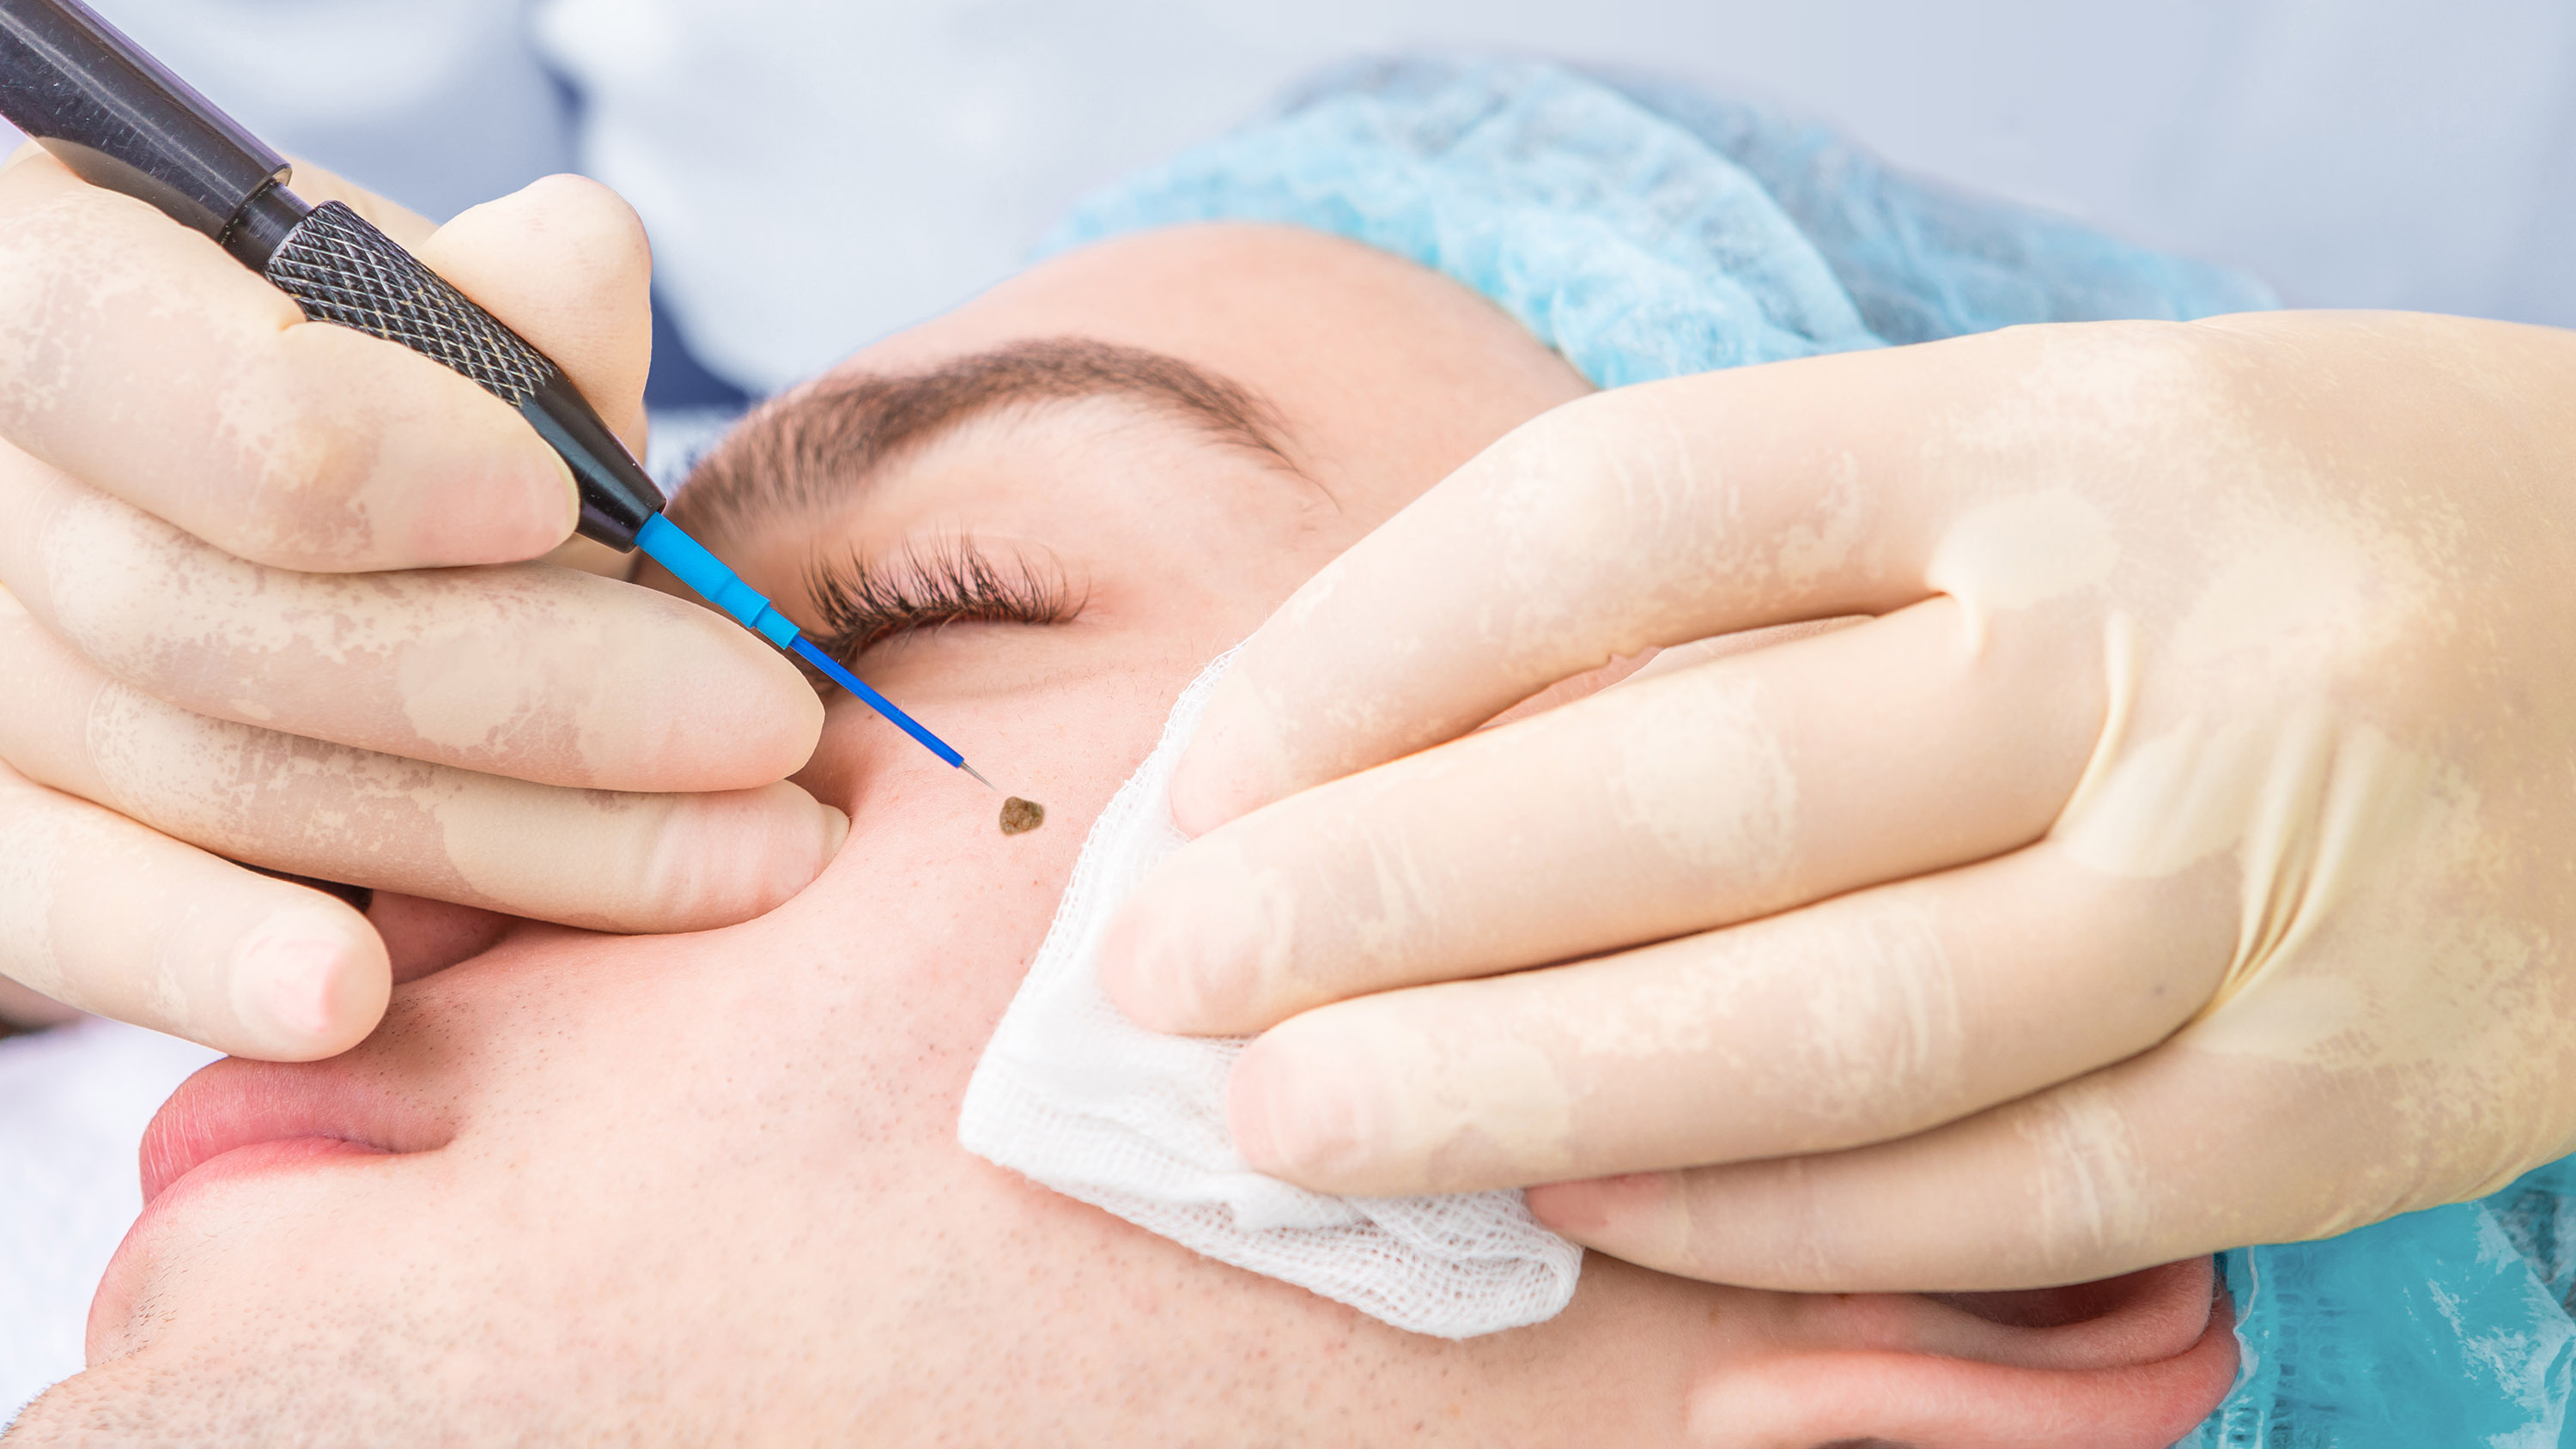 Radiofrequency cosmetic mole and skin lesion removal